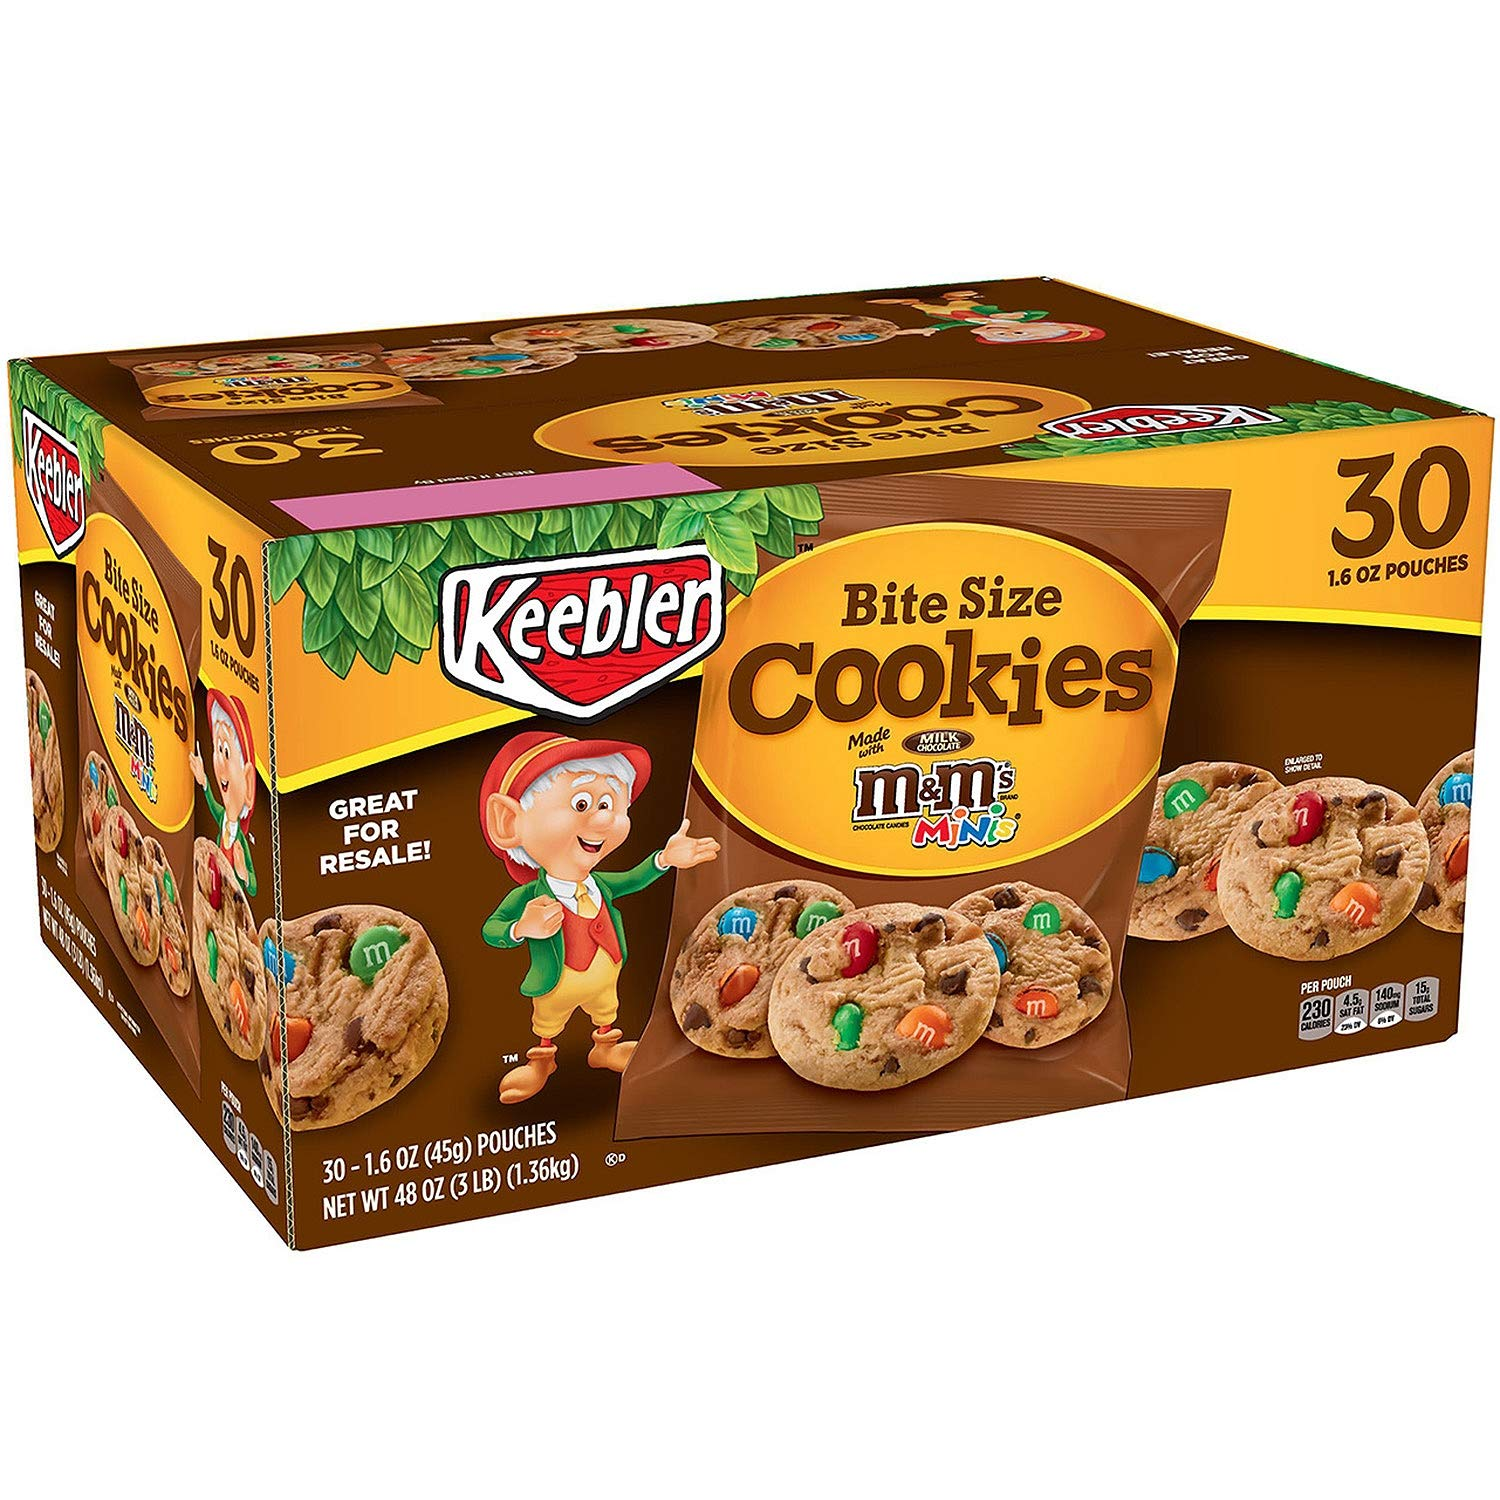 Keebler M&M Bite Size Cookies 1.6 oz., 30 ct. (pack of 4) A1